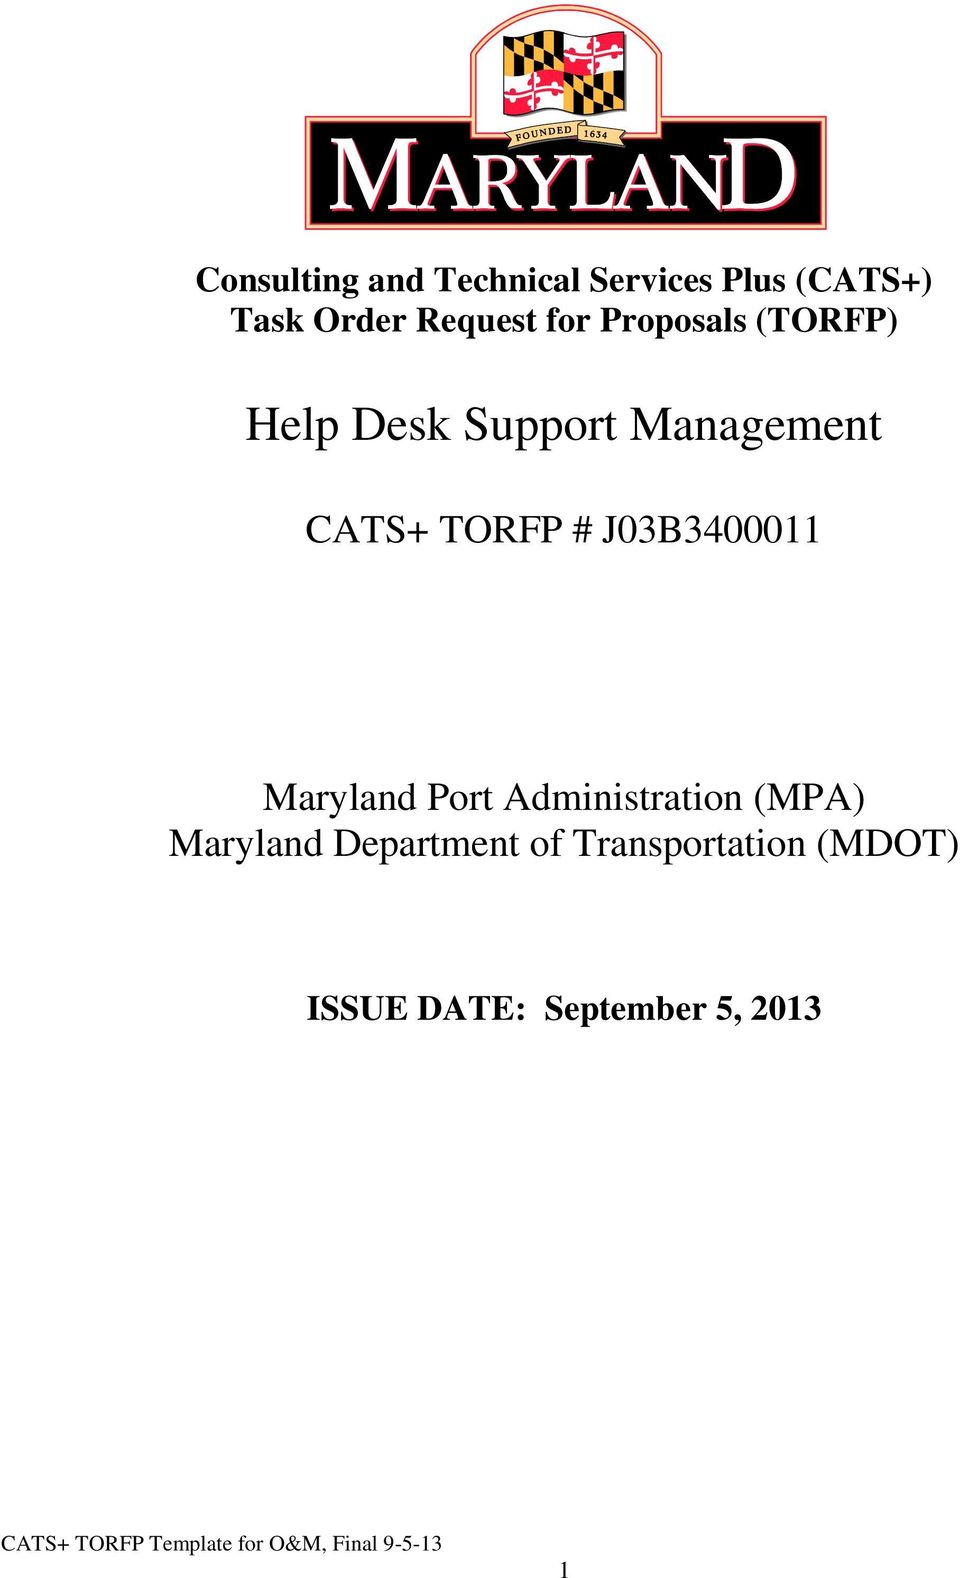 CATS+ TORFP # J03B3400011 Maryland Port Administration (MPA)